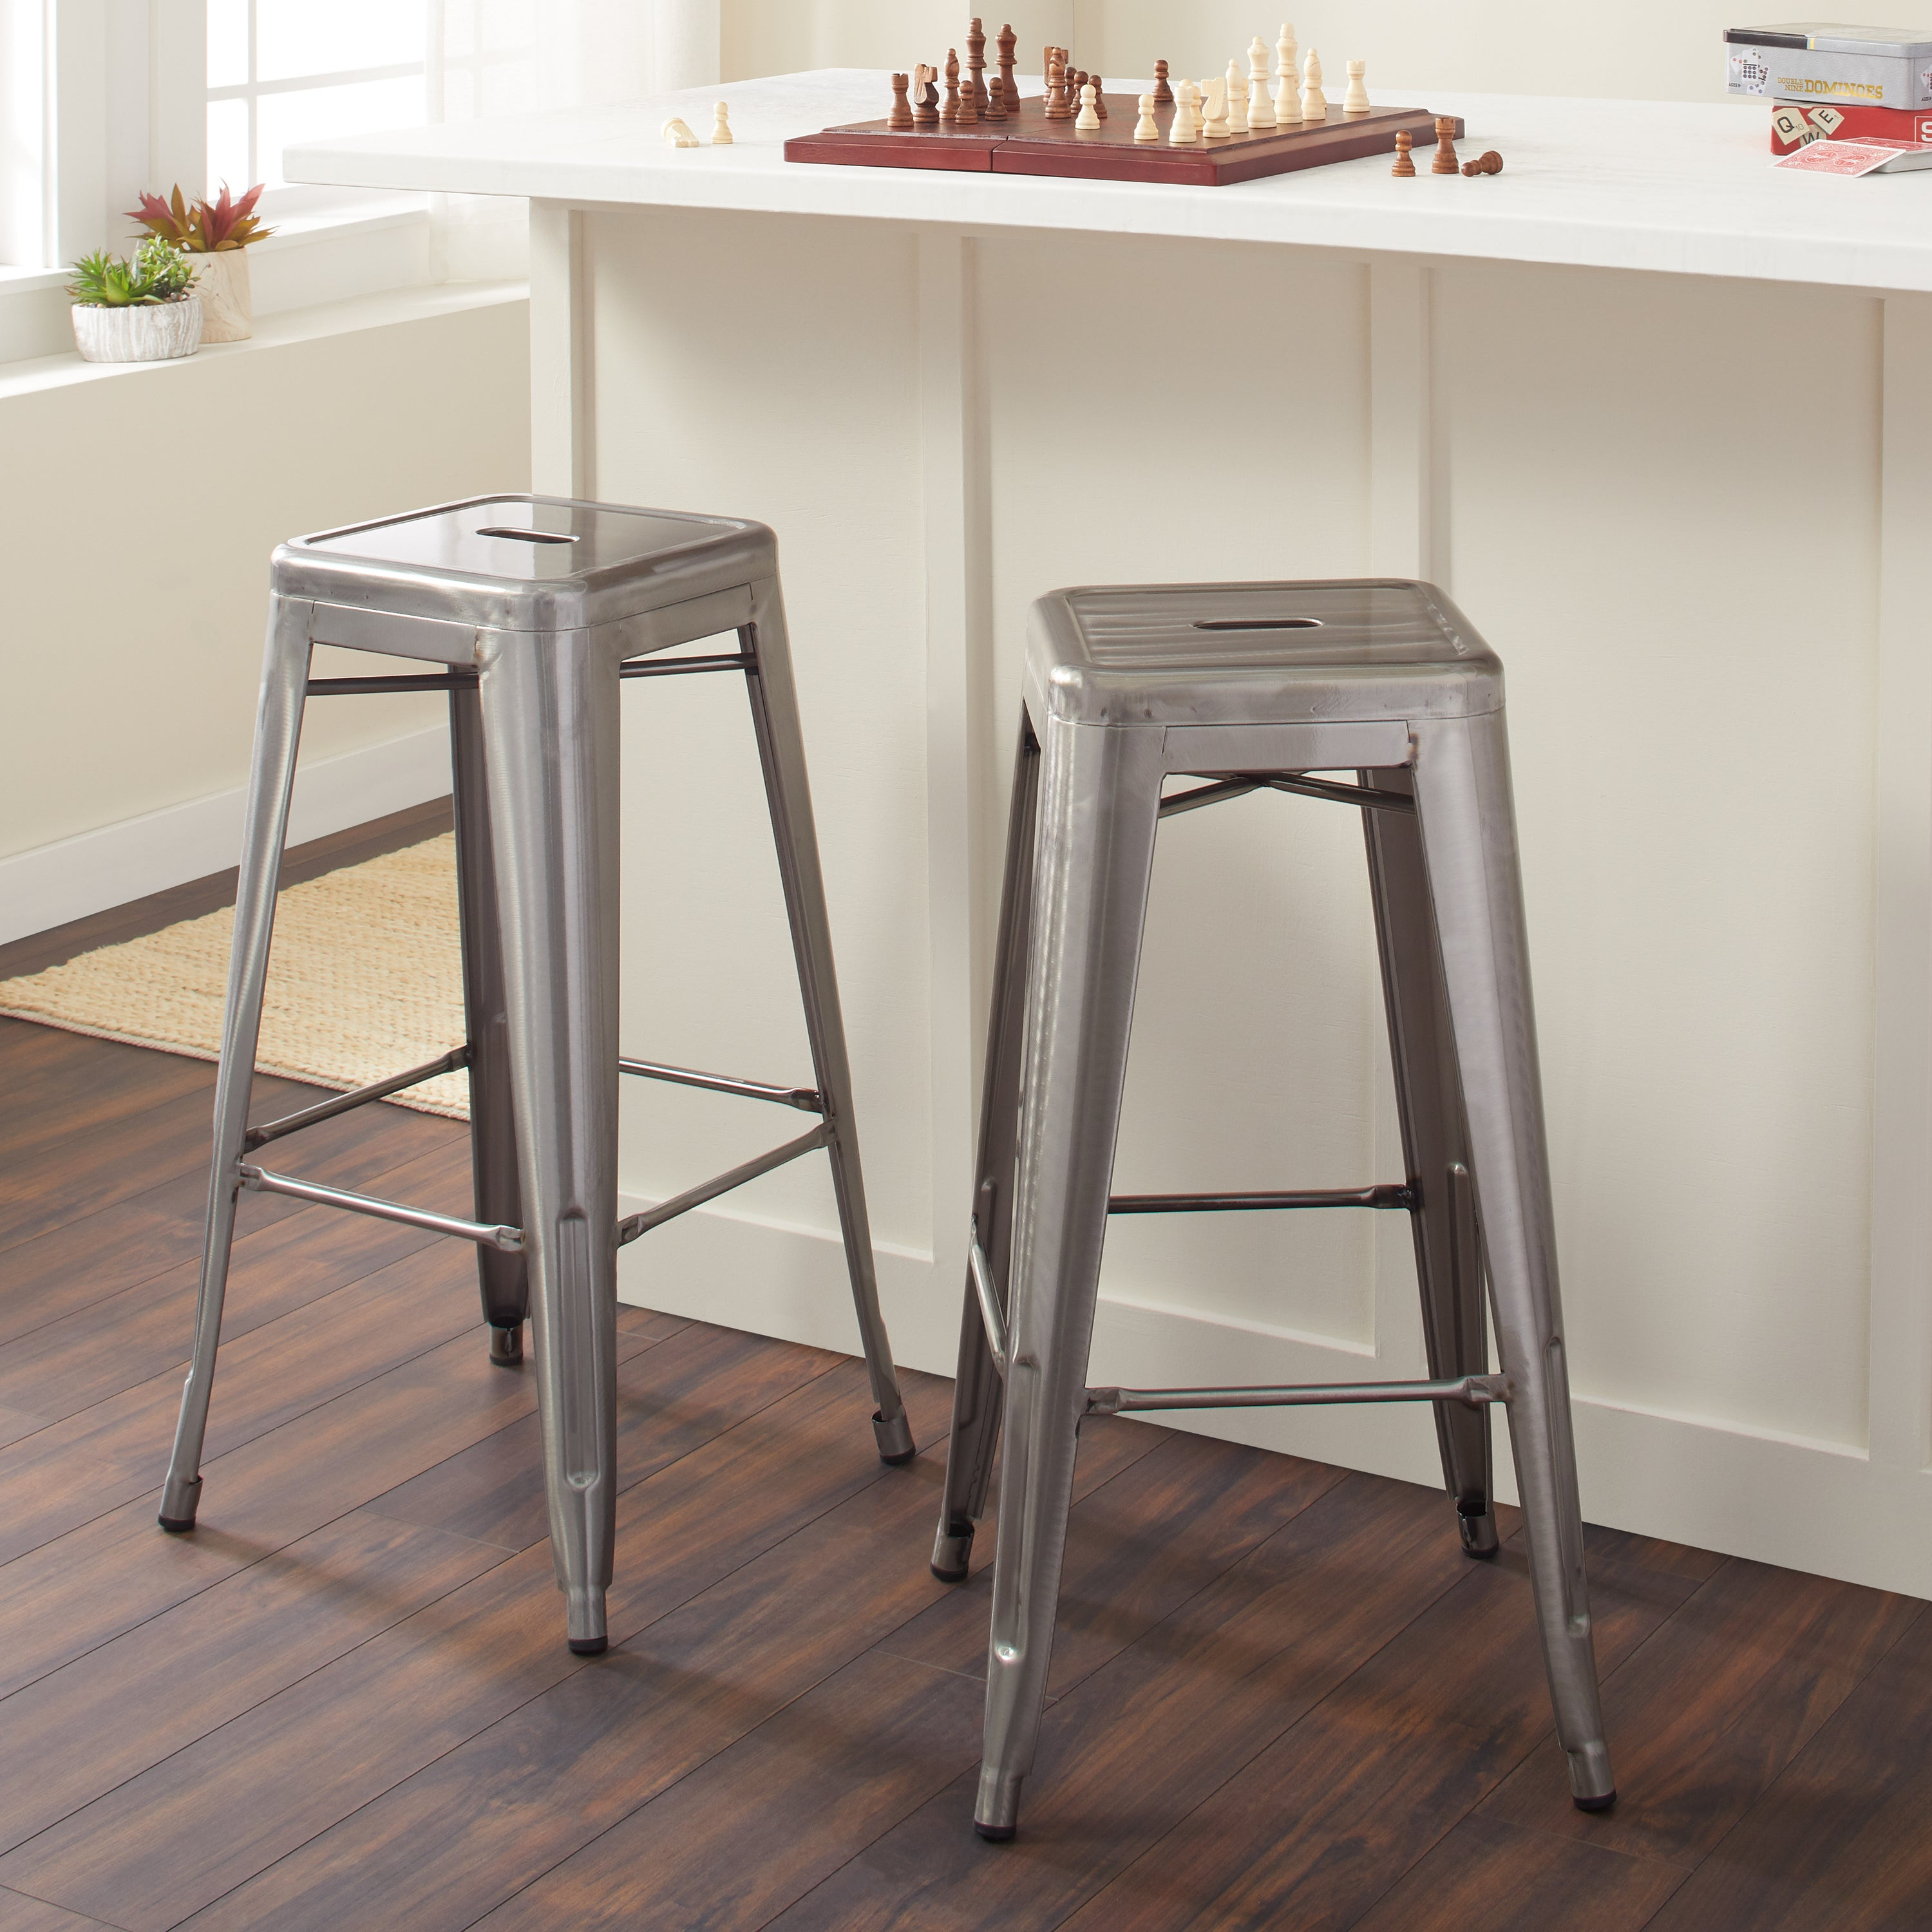 Tabouret 30 Inch Vintage And Gunmetal Bar Stools Set Of 2 Free Shipping Today 6839587